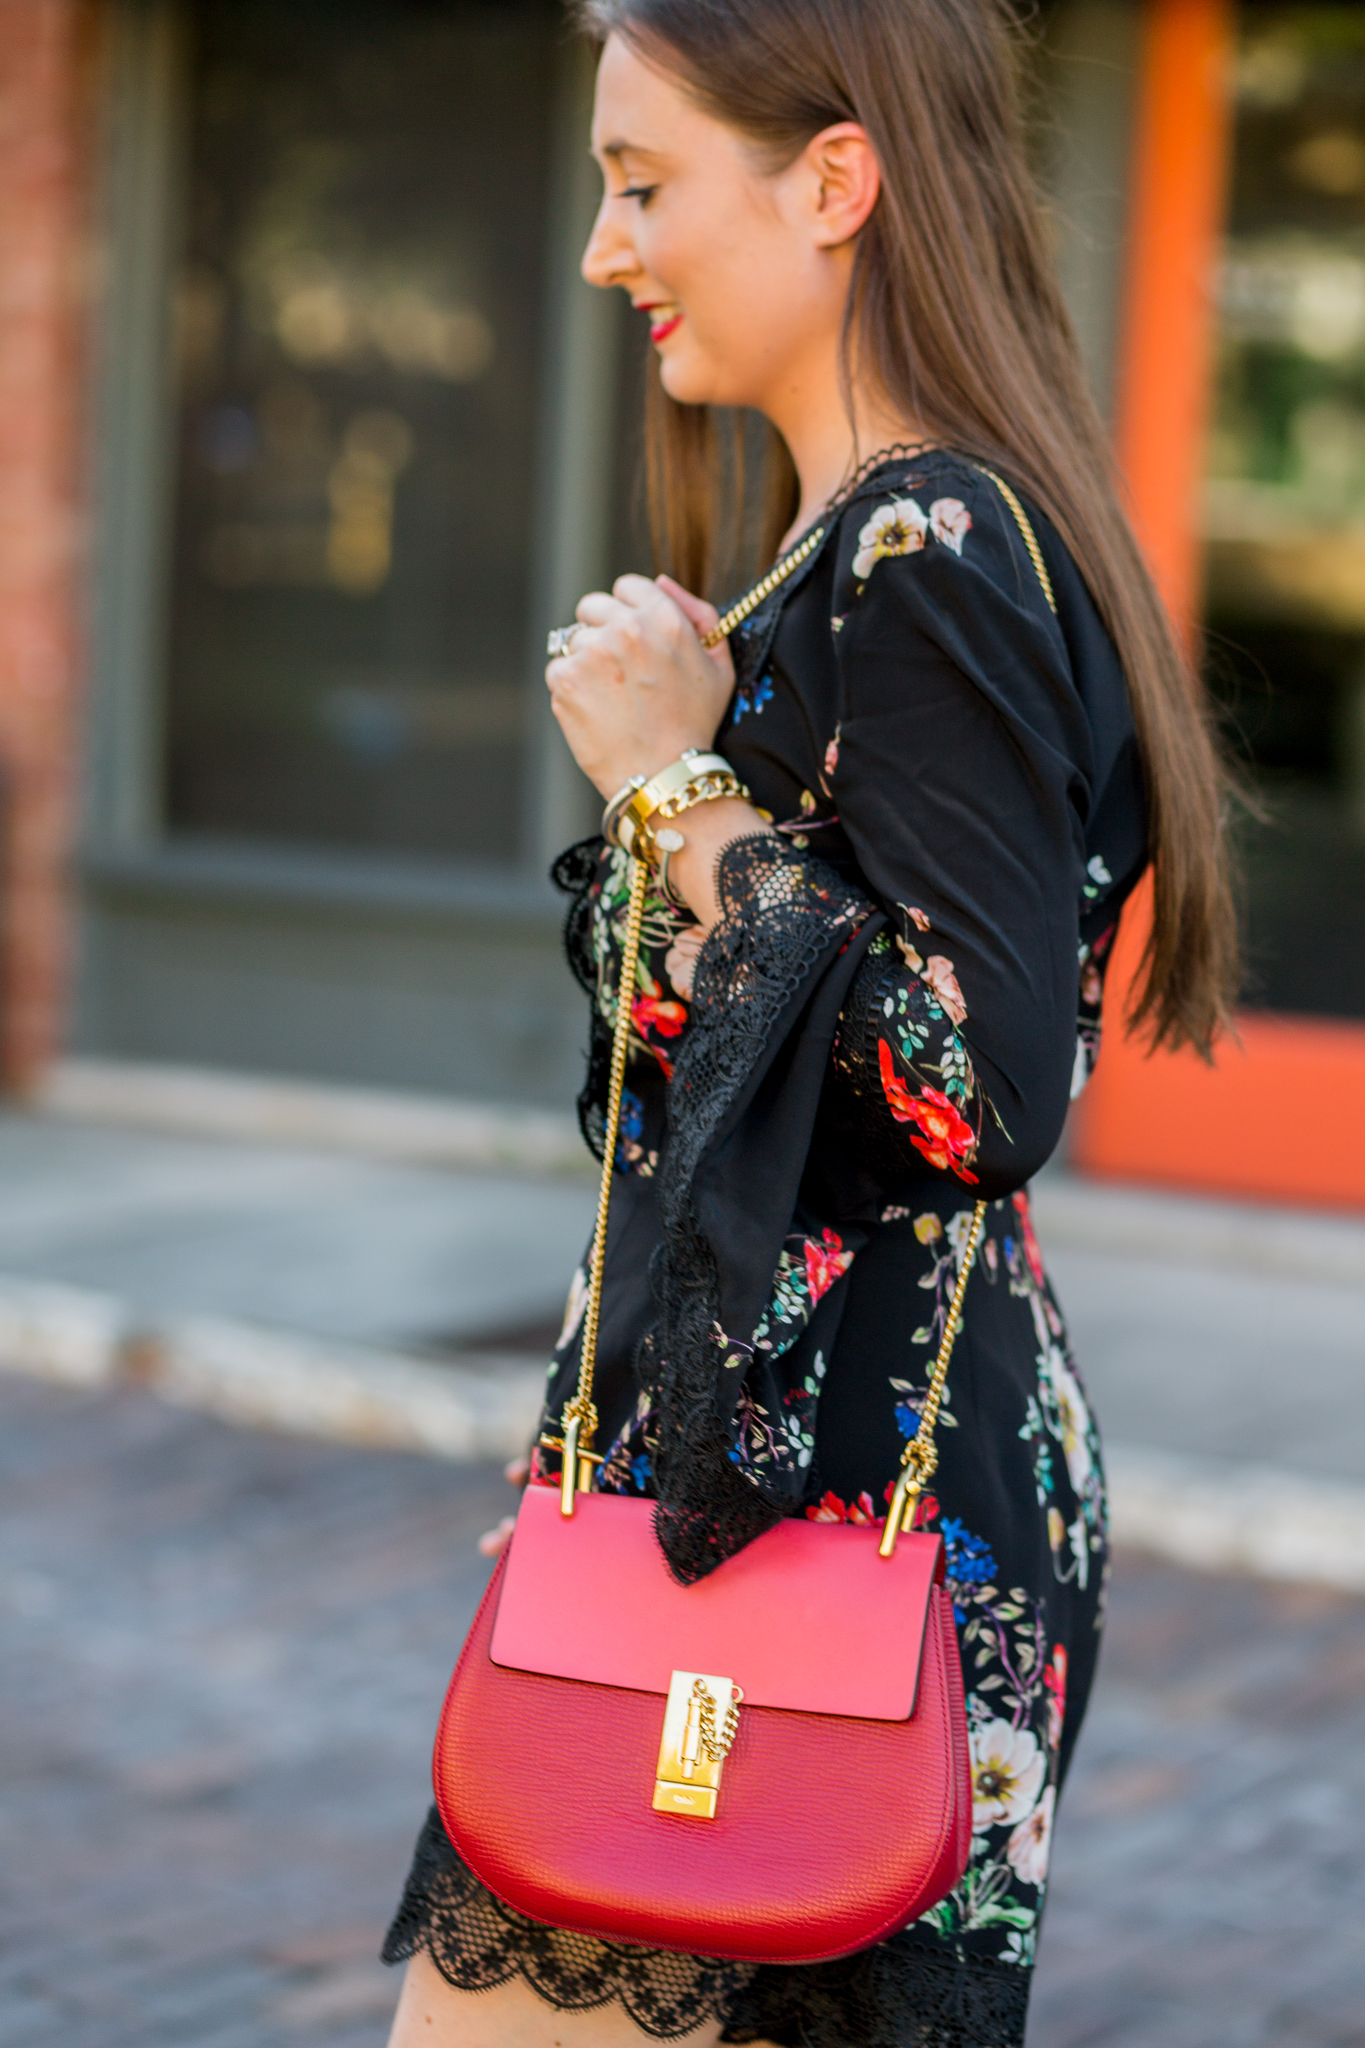 Holiday Festive Outfit Idea for the Southern Woman| Chloe drew red, holiday outfit, christian louboutin booties, fall fashion, romper, black floral romper, black suede booties